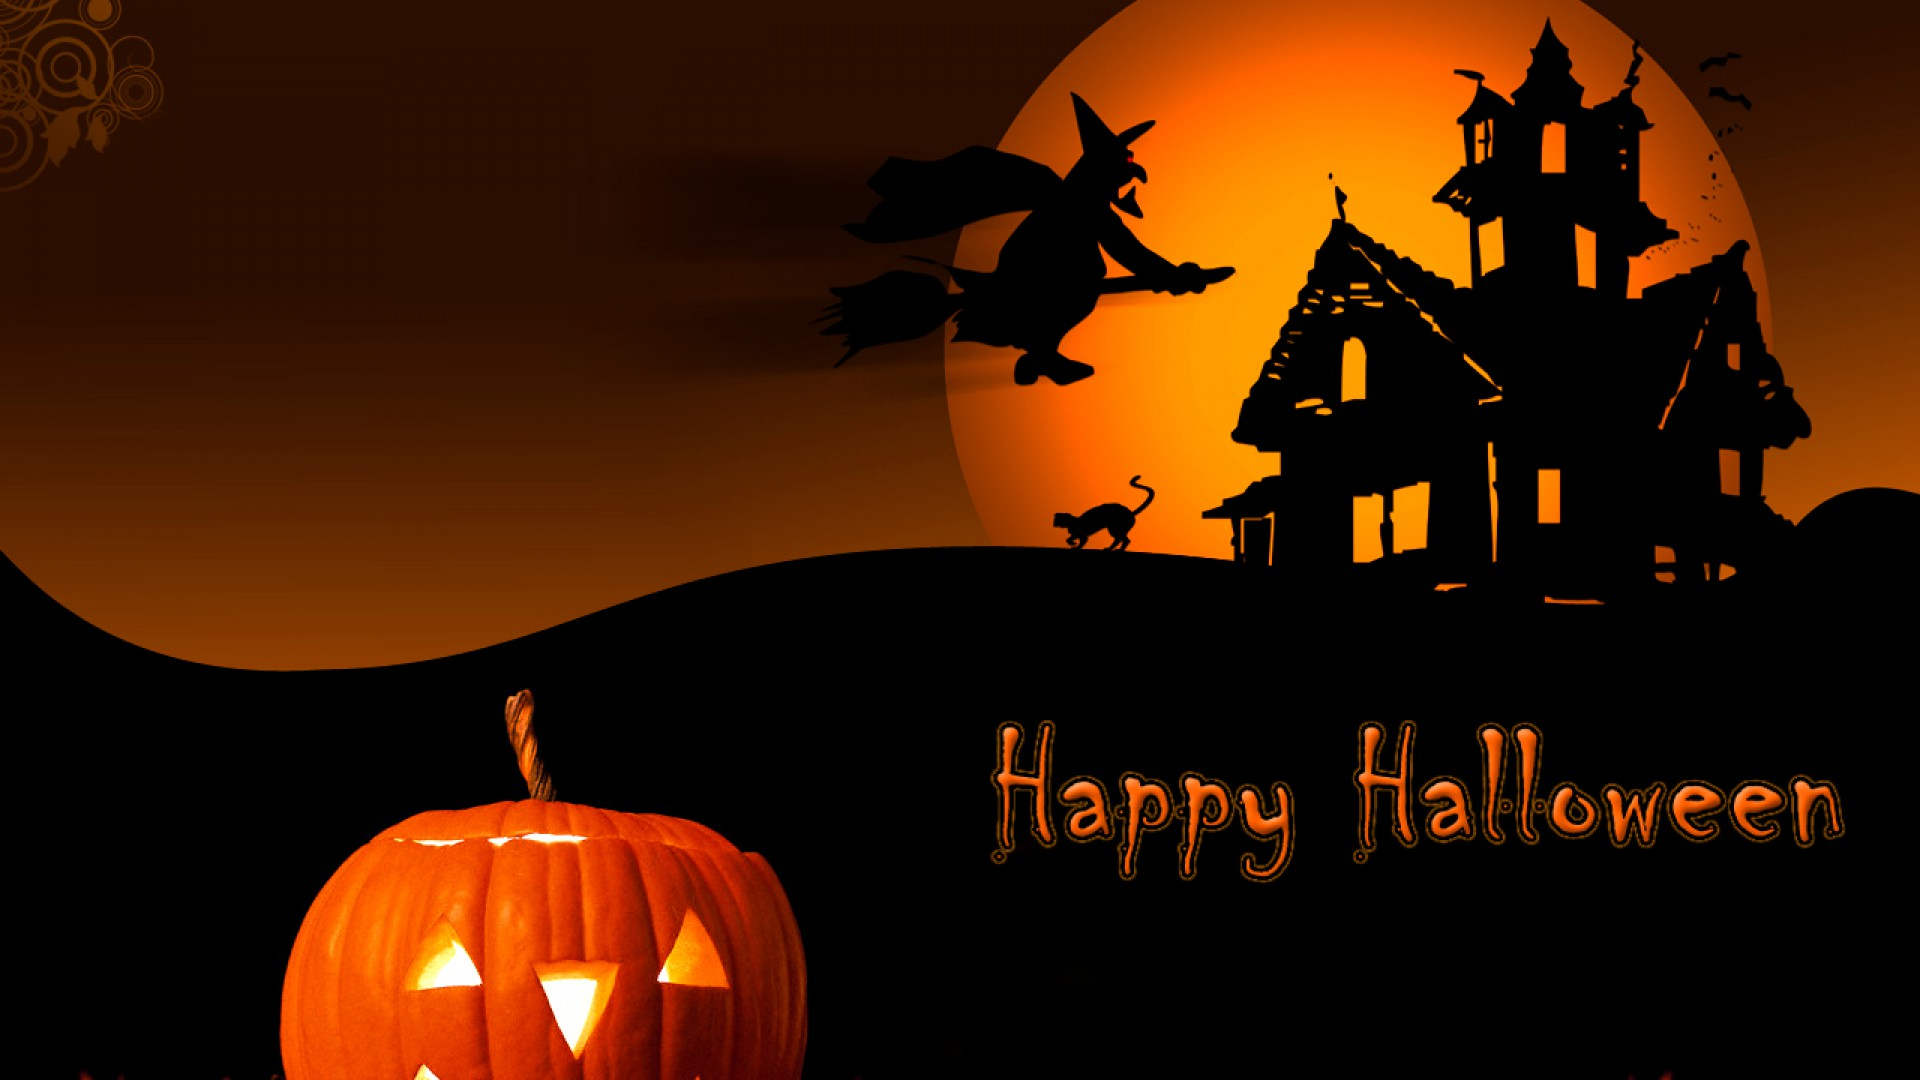 Wallpapers Hd Halloween 1080p 1920x1080